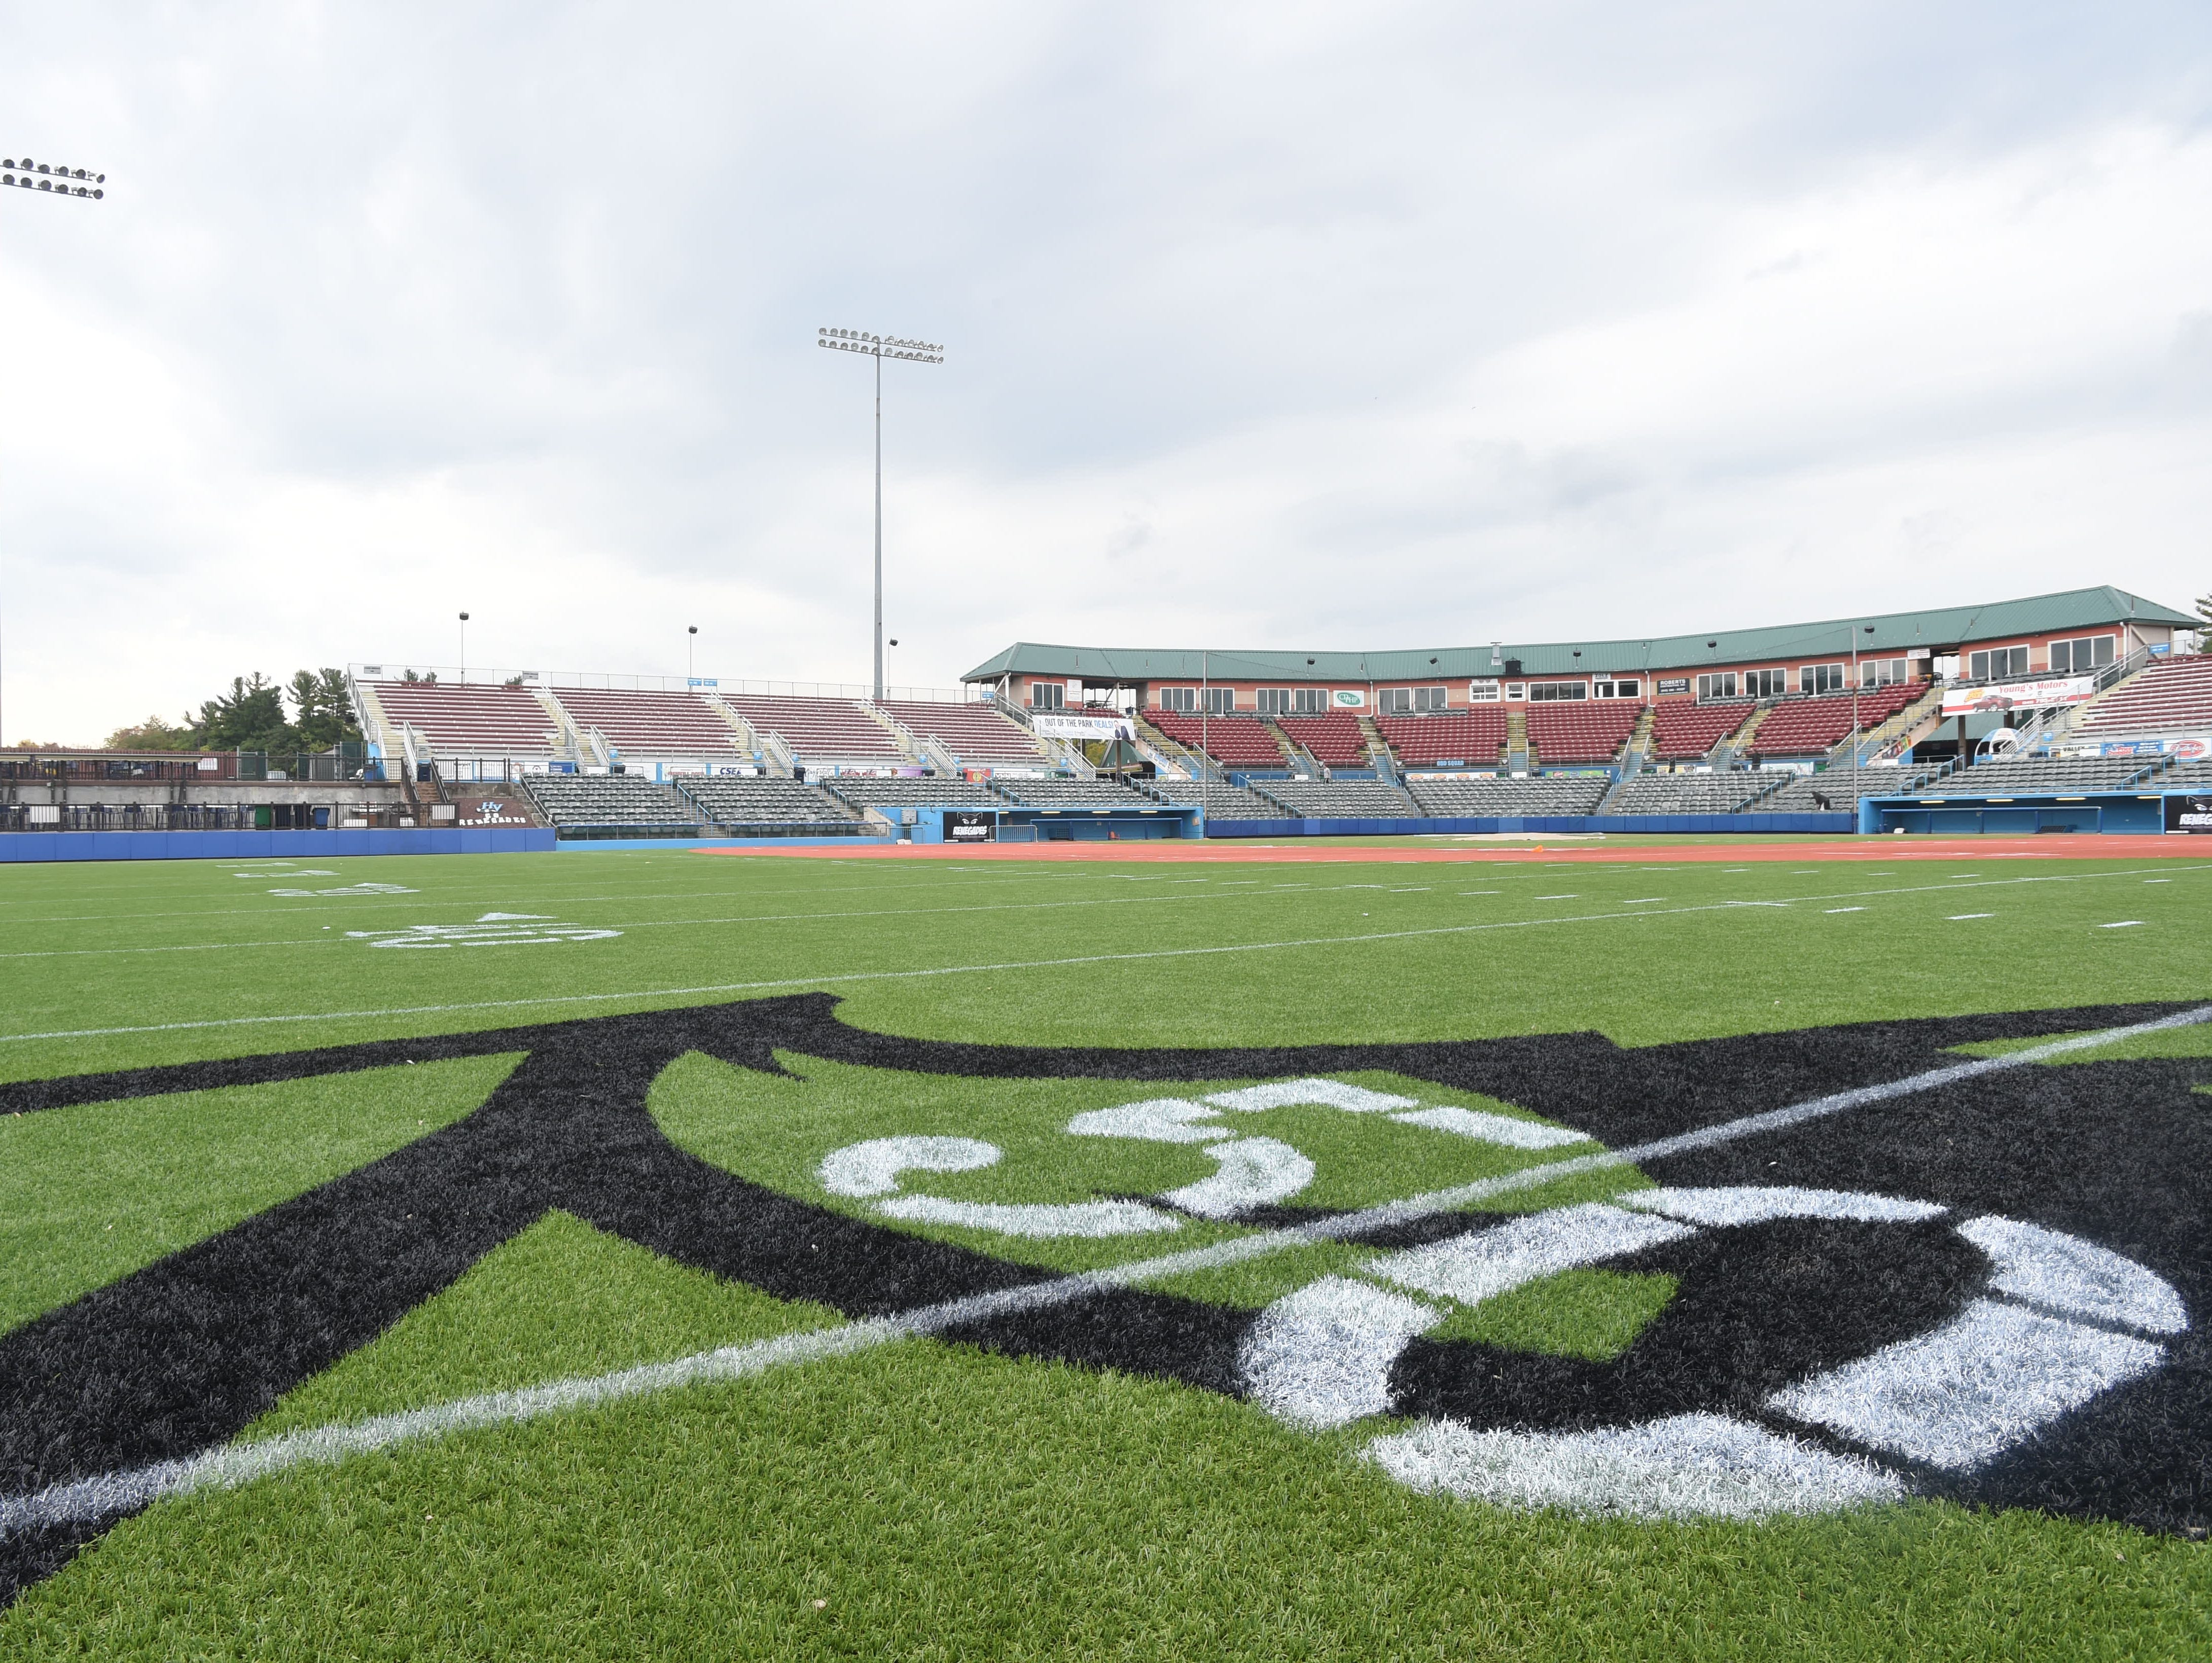 The 50 yard line at Dutchess Stadium in Fishkill on Friday. Dutchess Stadium prepares for opening day on October 10th for the minor league football team, the Hudson Valley Fort which will play three home games.